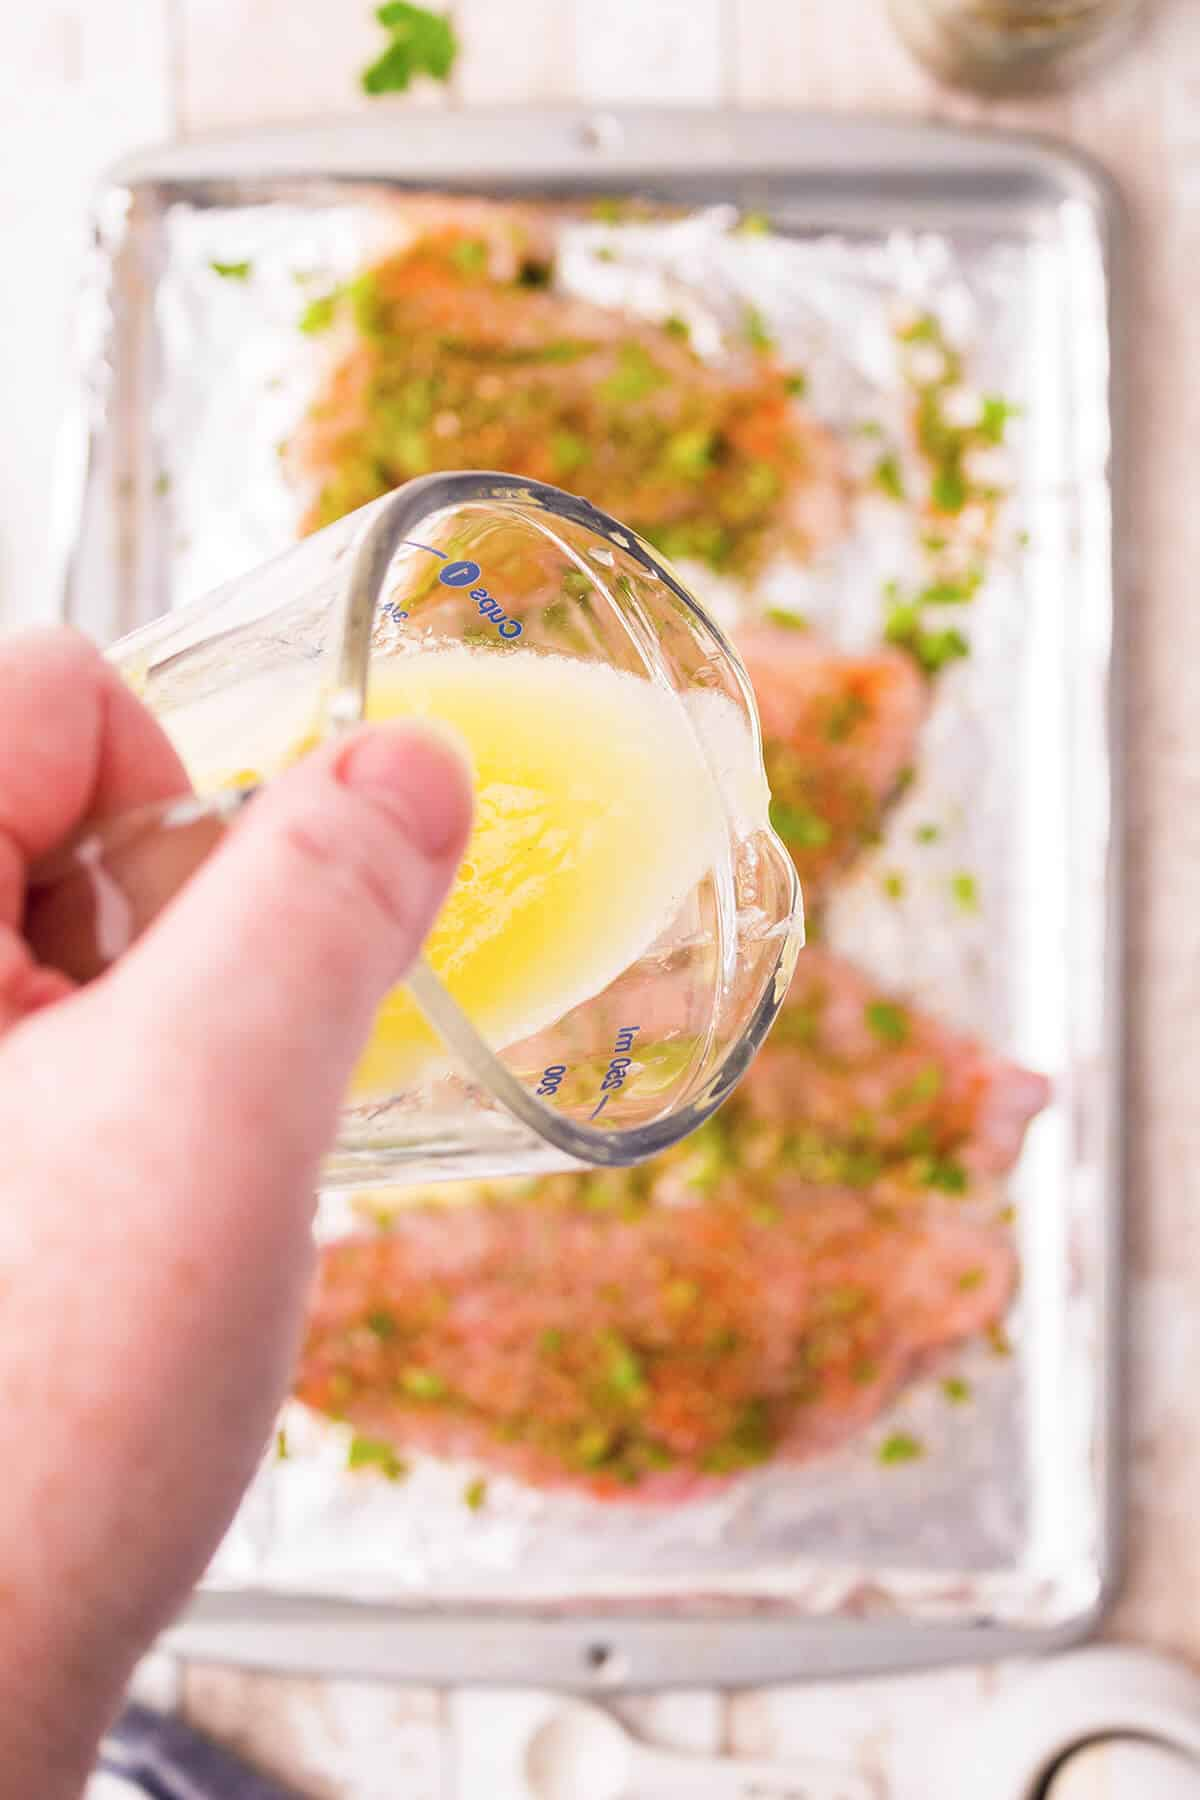 Small cup containing a mixture of melted butter, lemon juice and garlic powder.